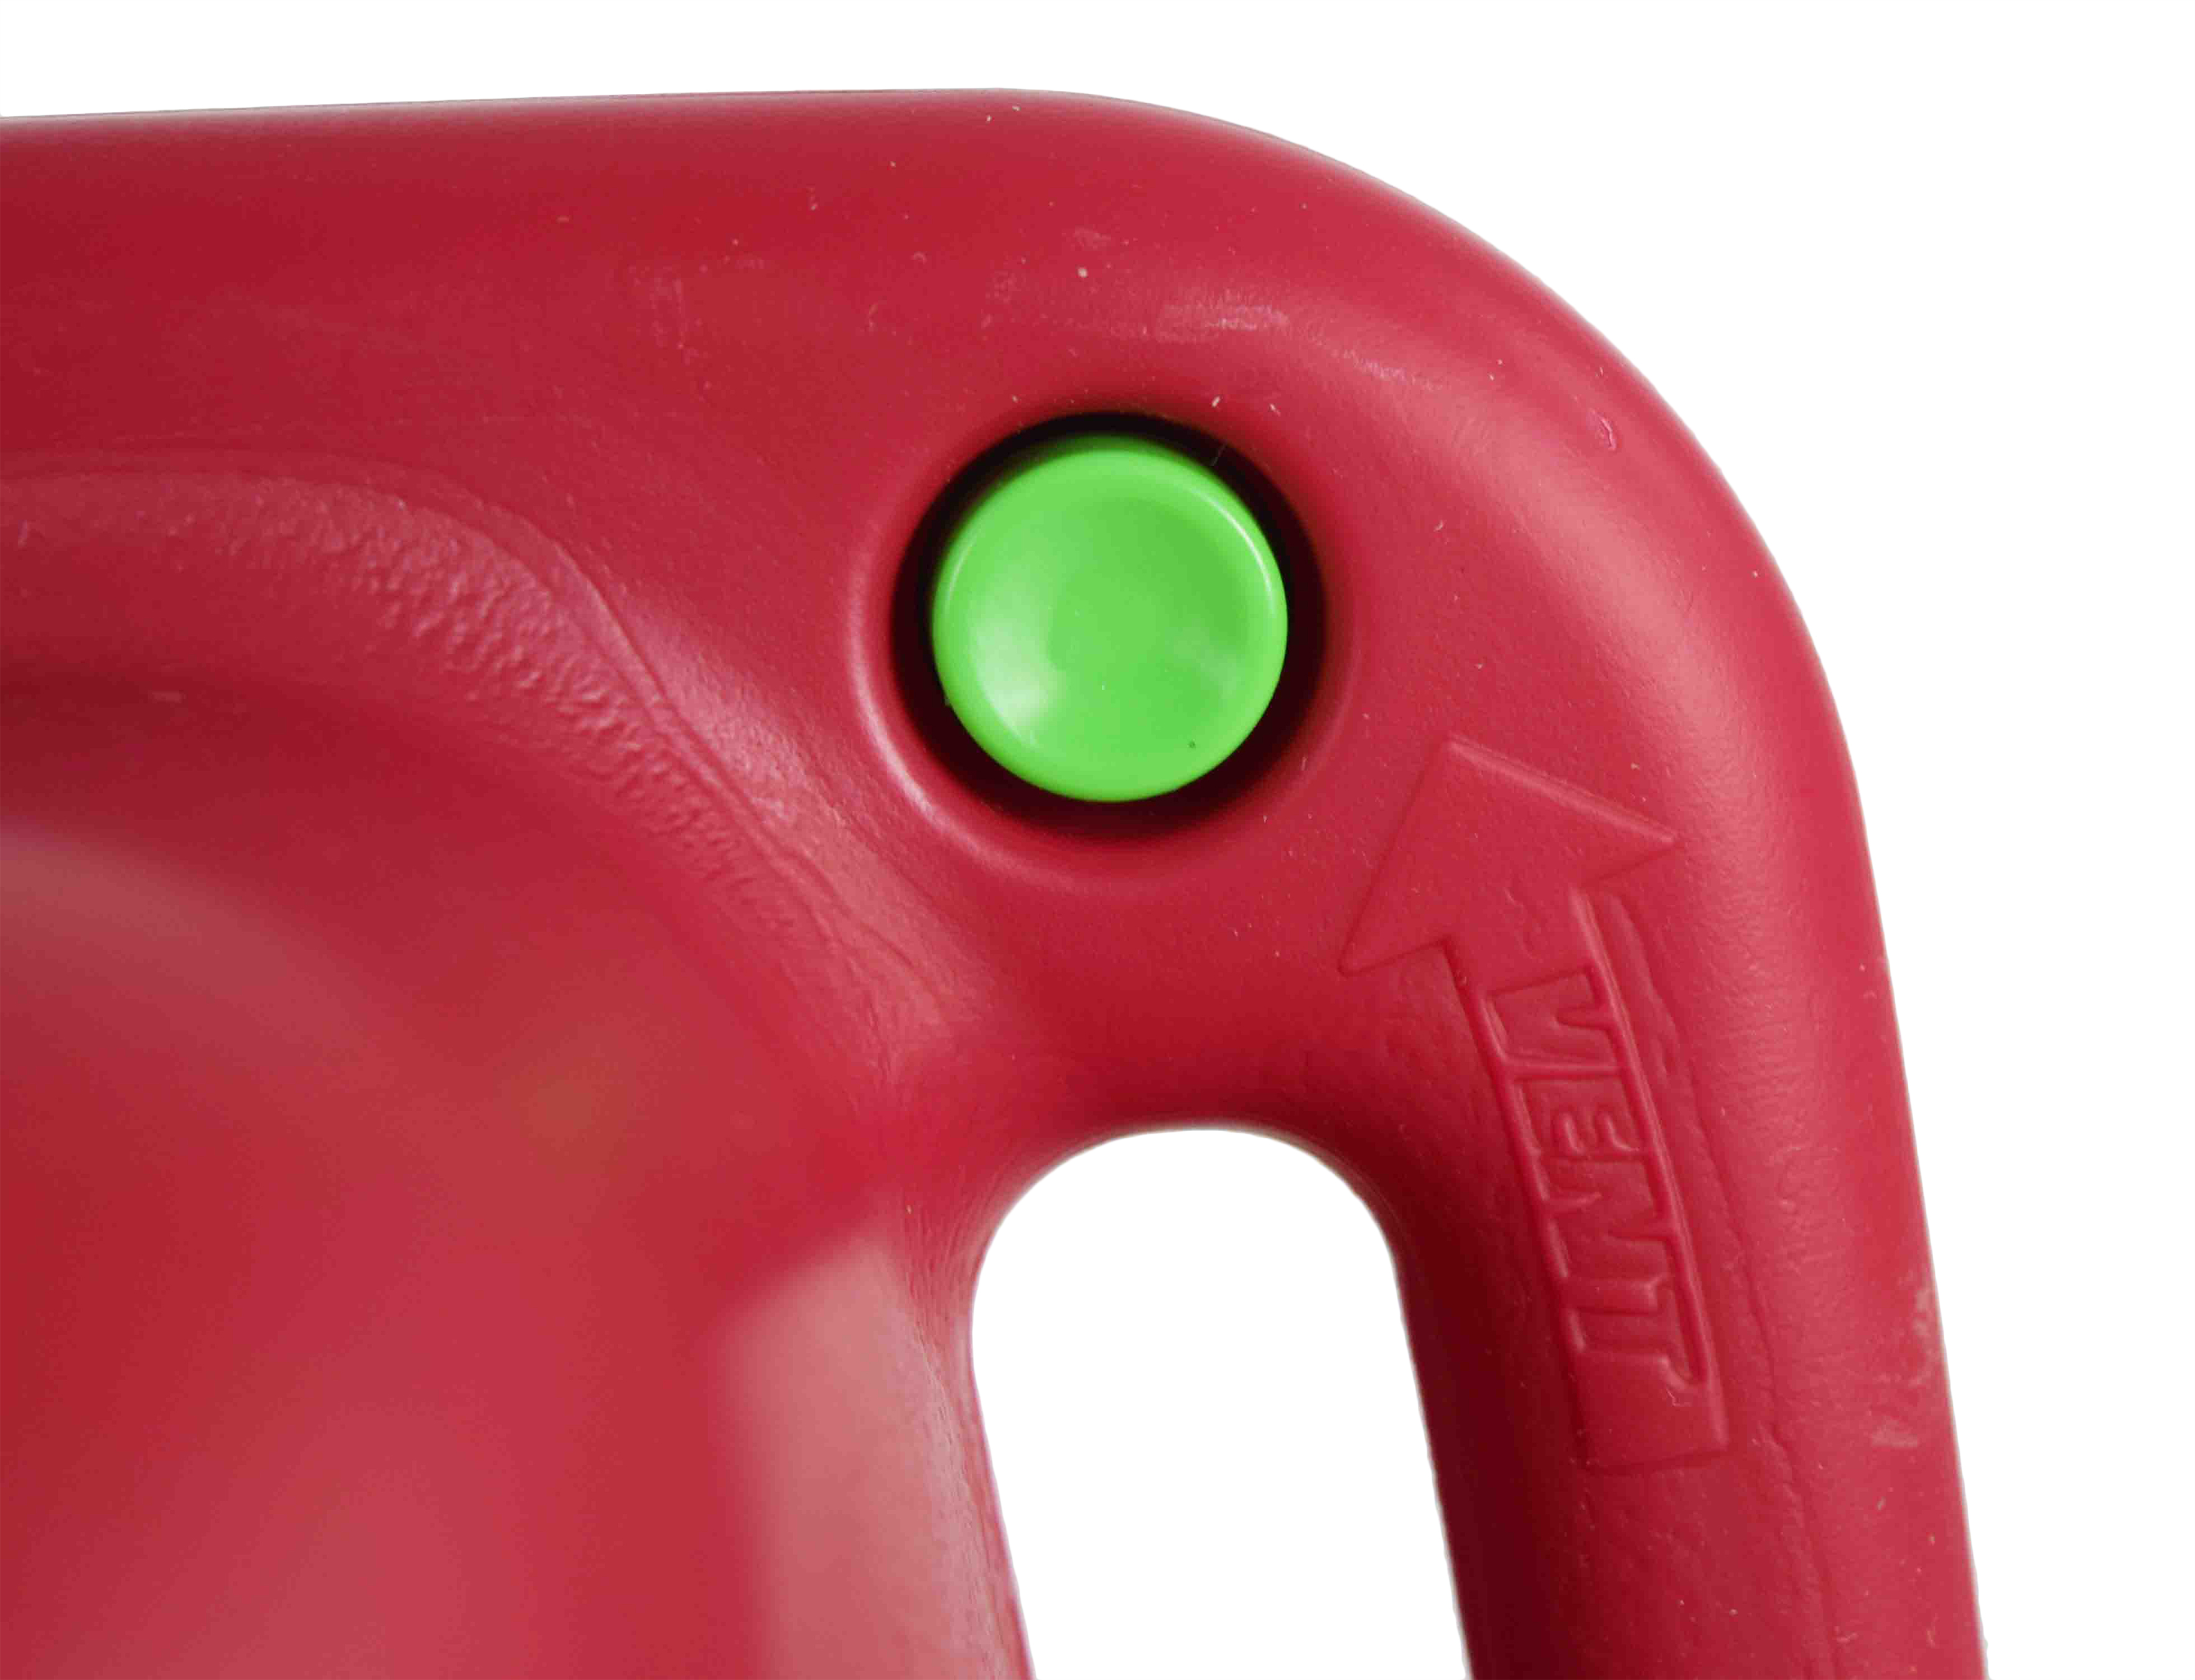 Fuelworx-Red-5-Gallon-Stackable-Fast-Pour-Gas-Fuel-Can-CARB-Compliant-Made-in-The-USA-5-Gallon-Gas-Can-3-Pack-image-6